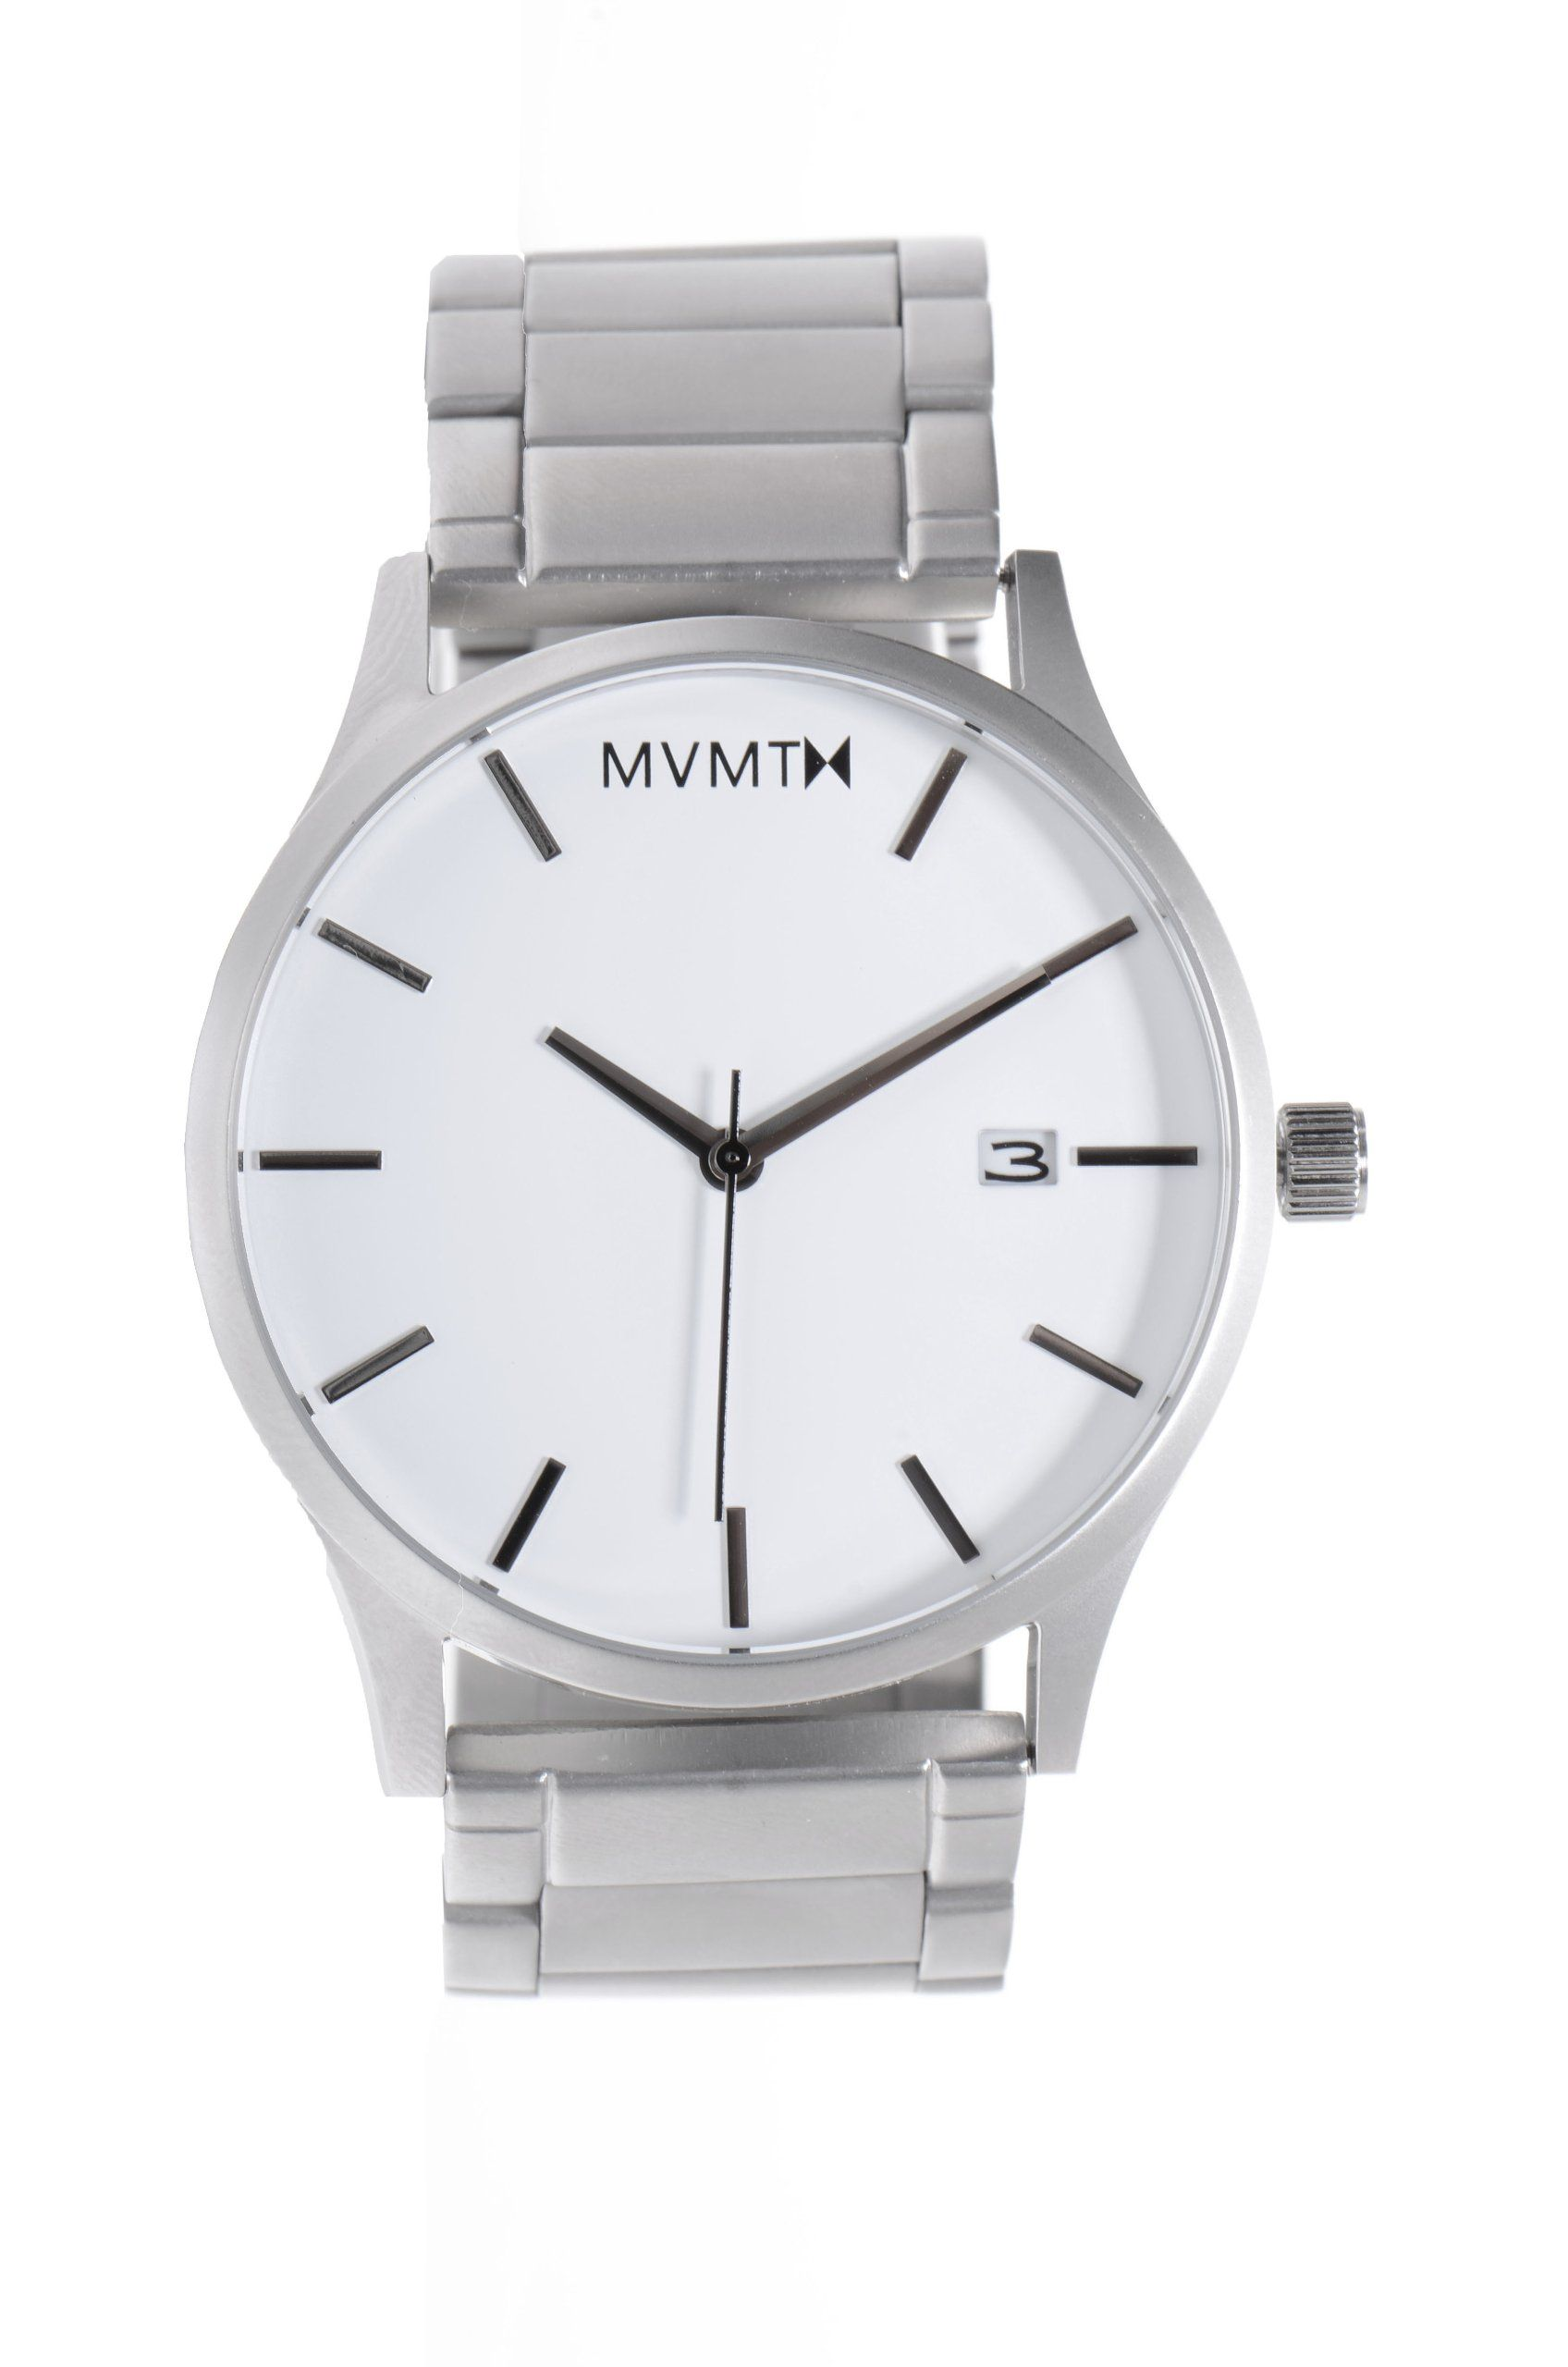 Mvmt Watches White Face With Silver Stainless Steel Bracelet Men S Watch